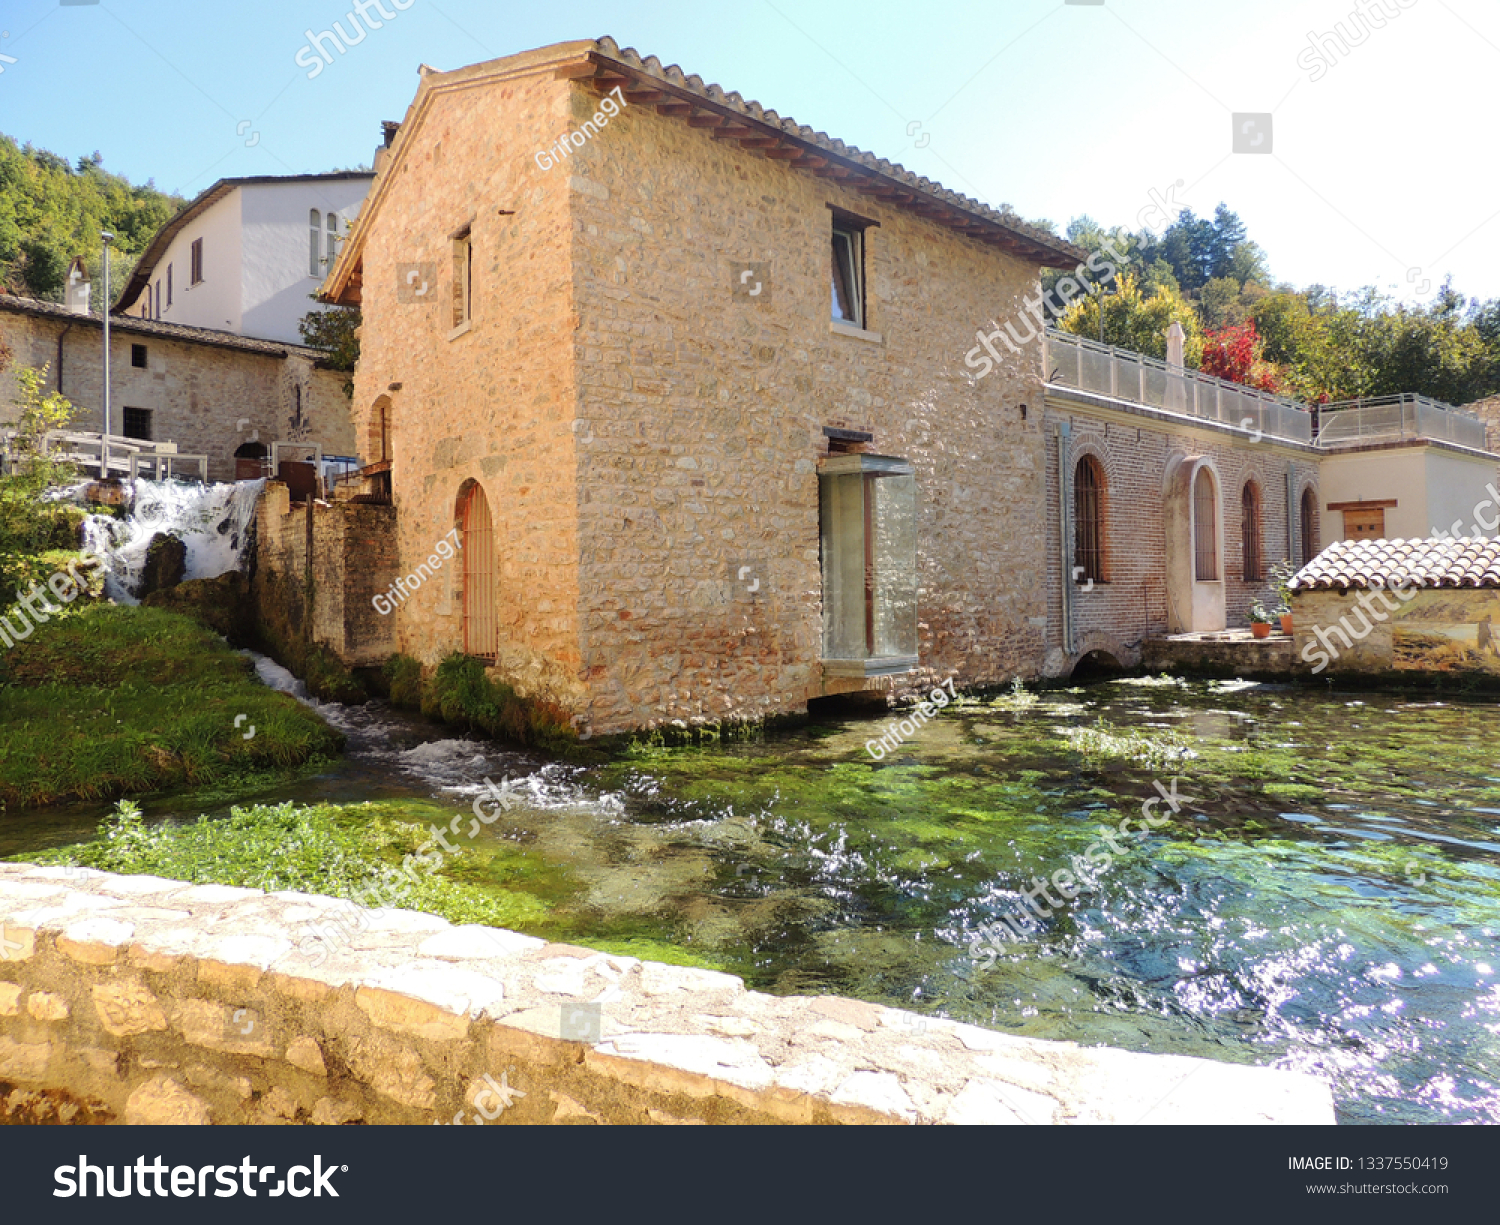 """RASIGLIA, ITALY- November 2018: Rasiglia is a medieval village in the center of Italy, famous for the streams of water crossing the town. It was called """"the little Venice"""" for this reason."""